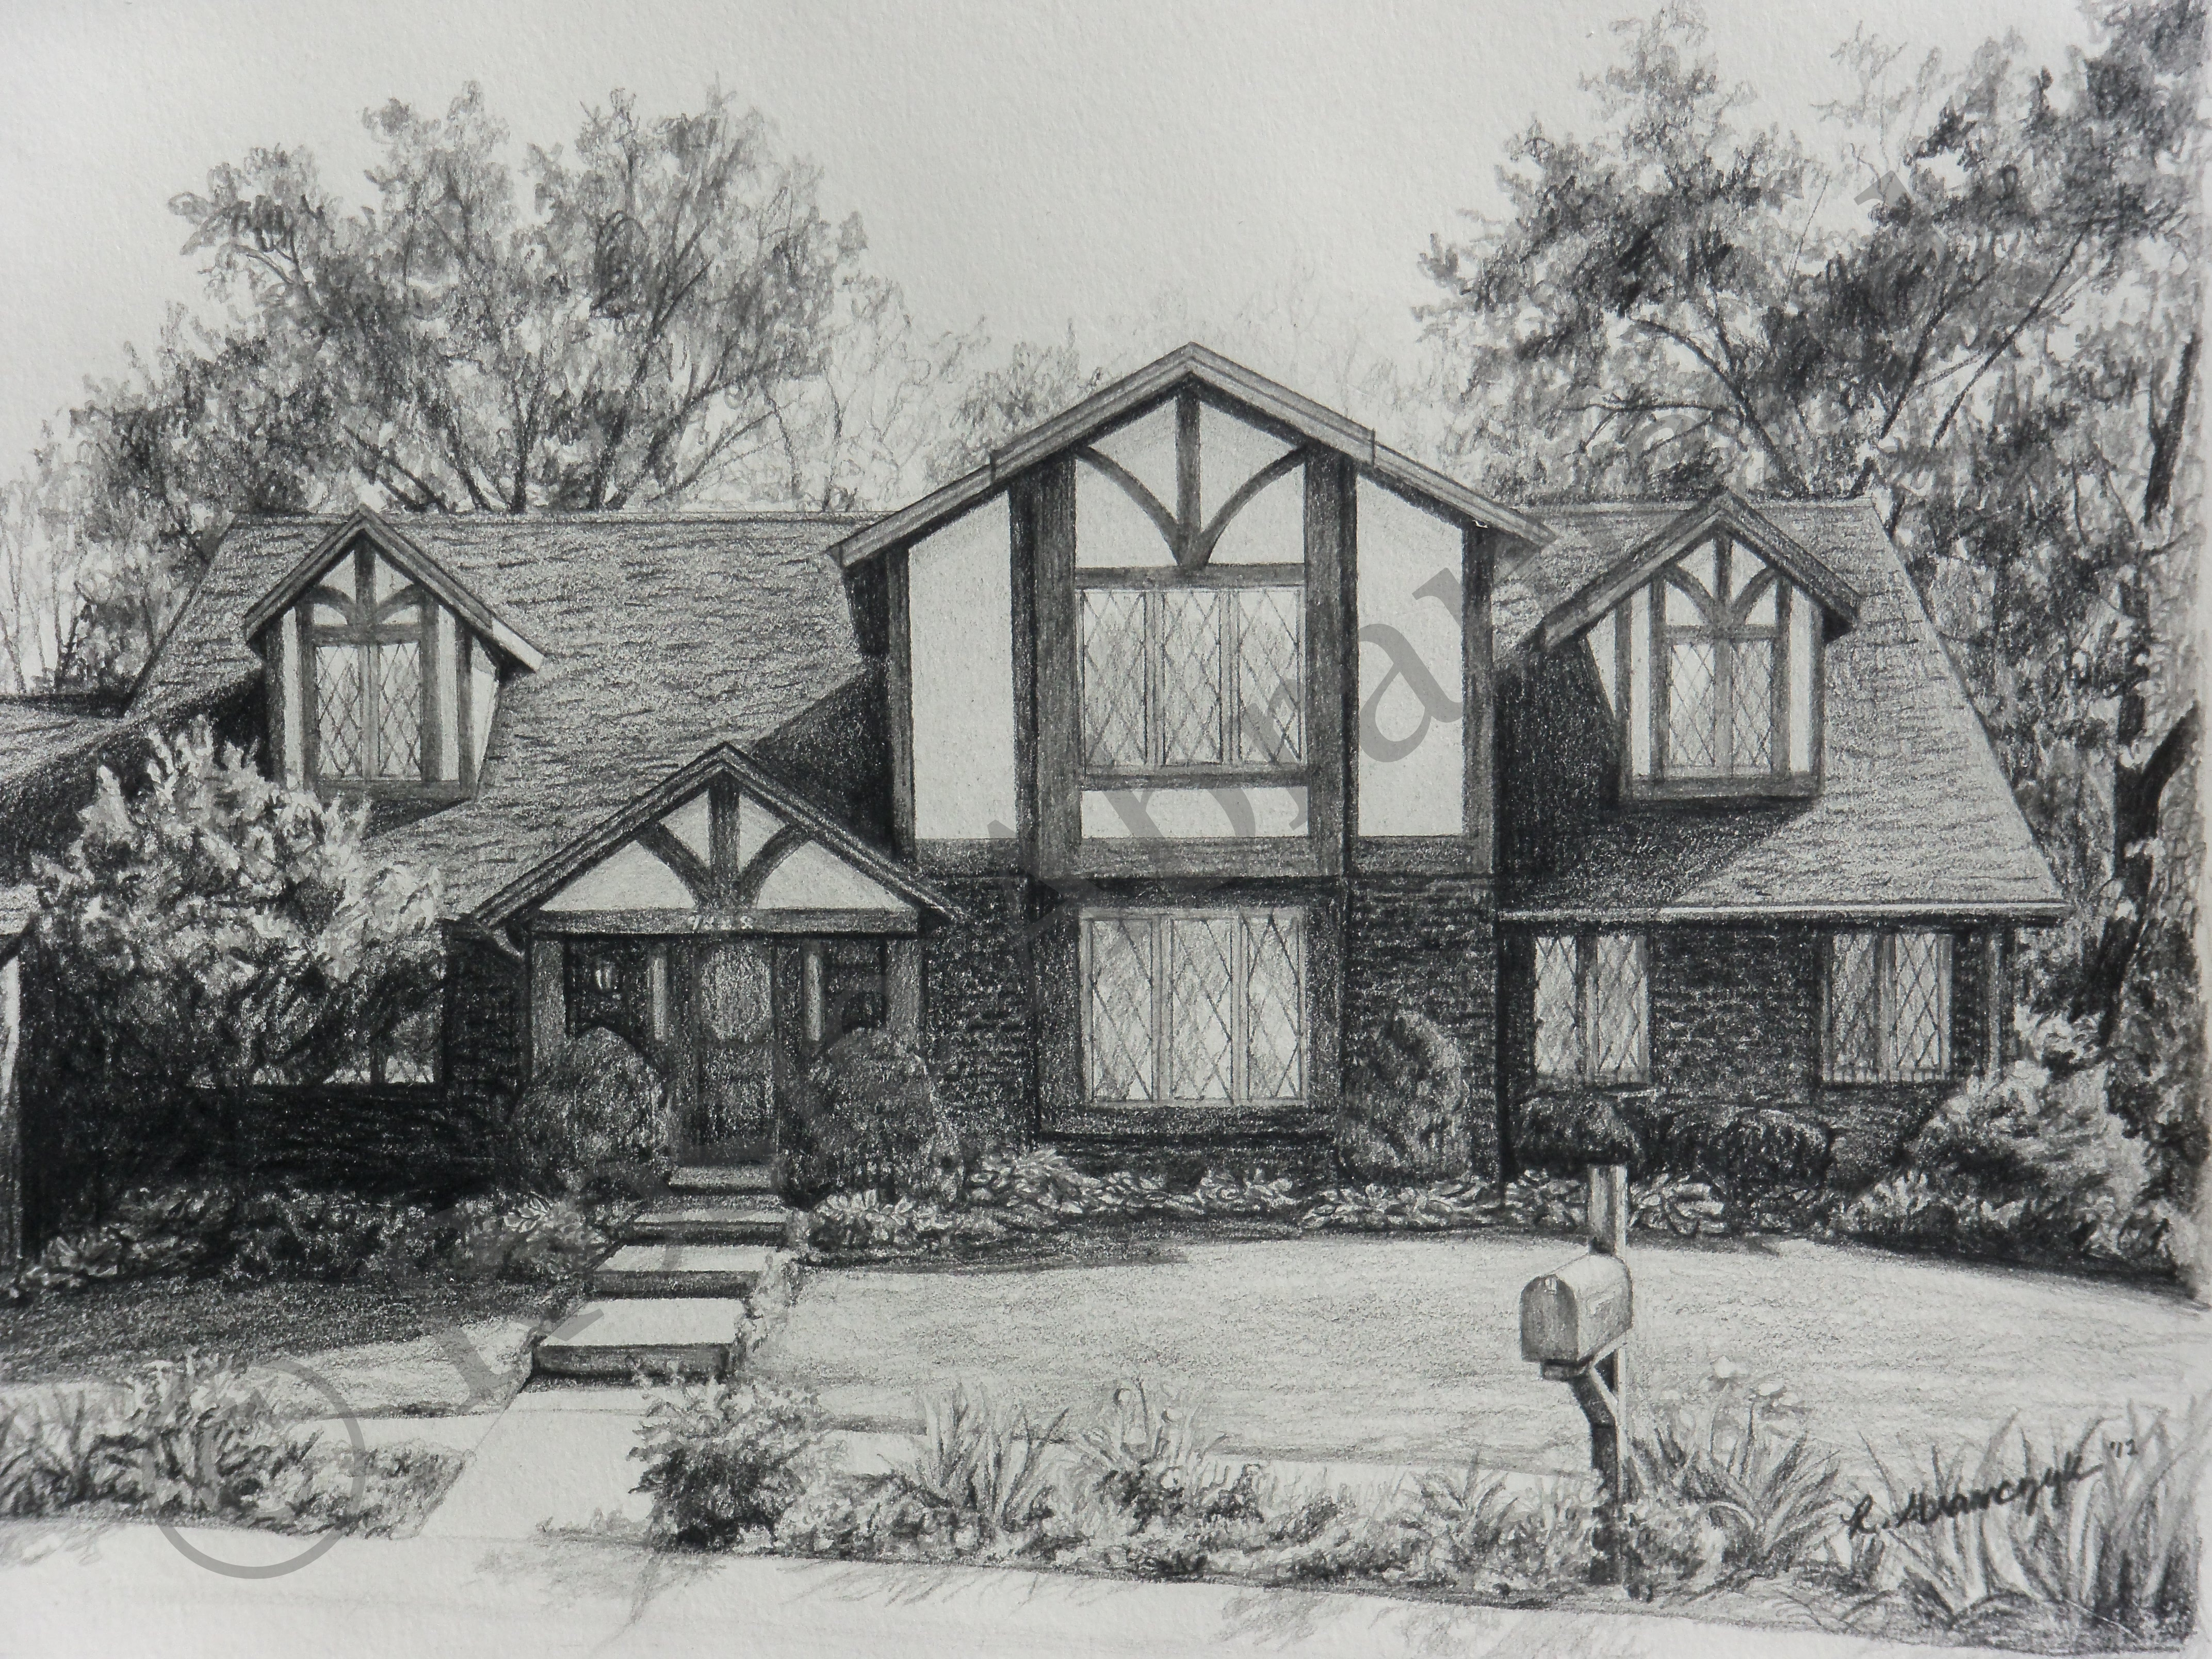 South County Home, by Rosie Abramczyk, Pencil, 2012